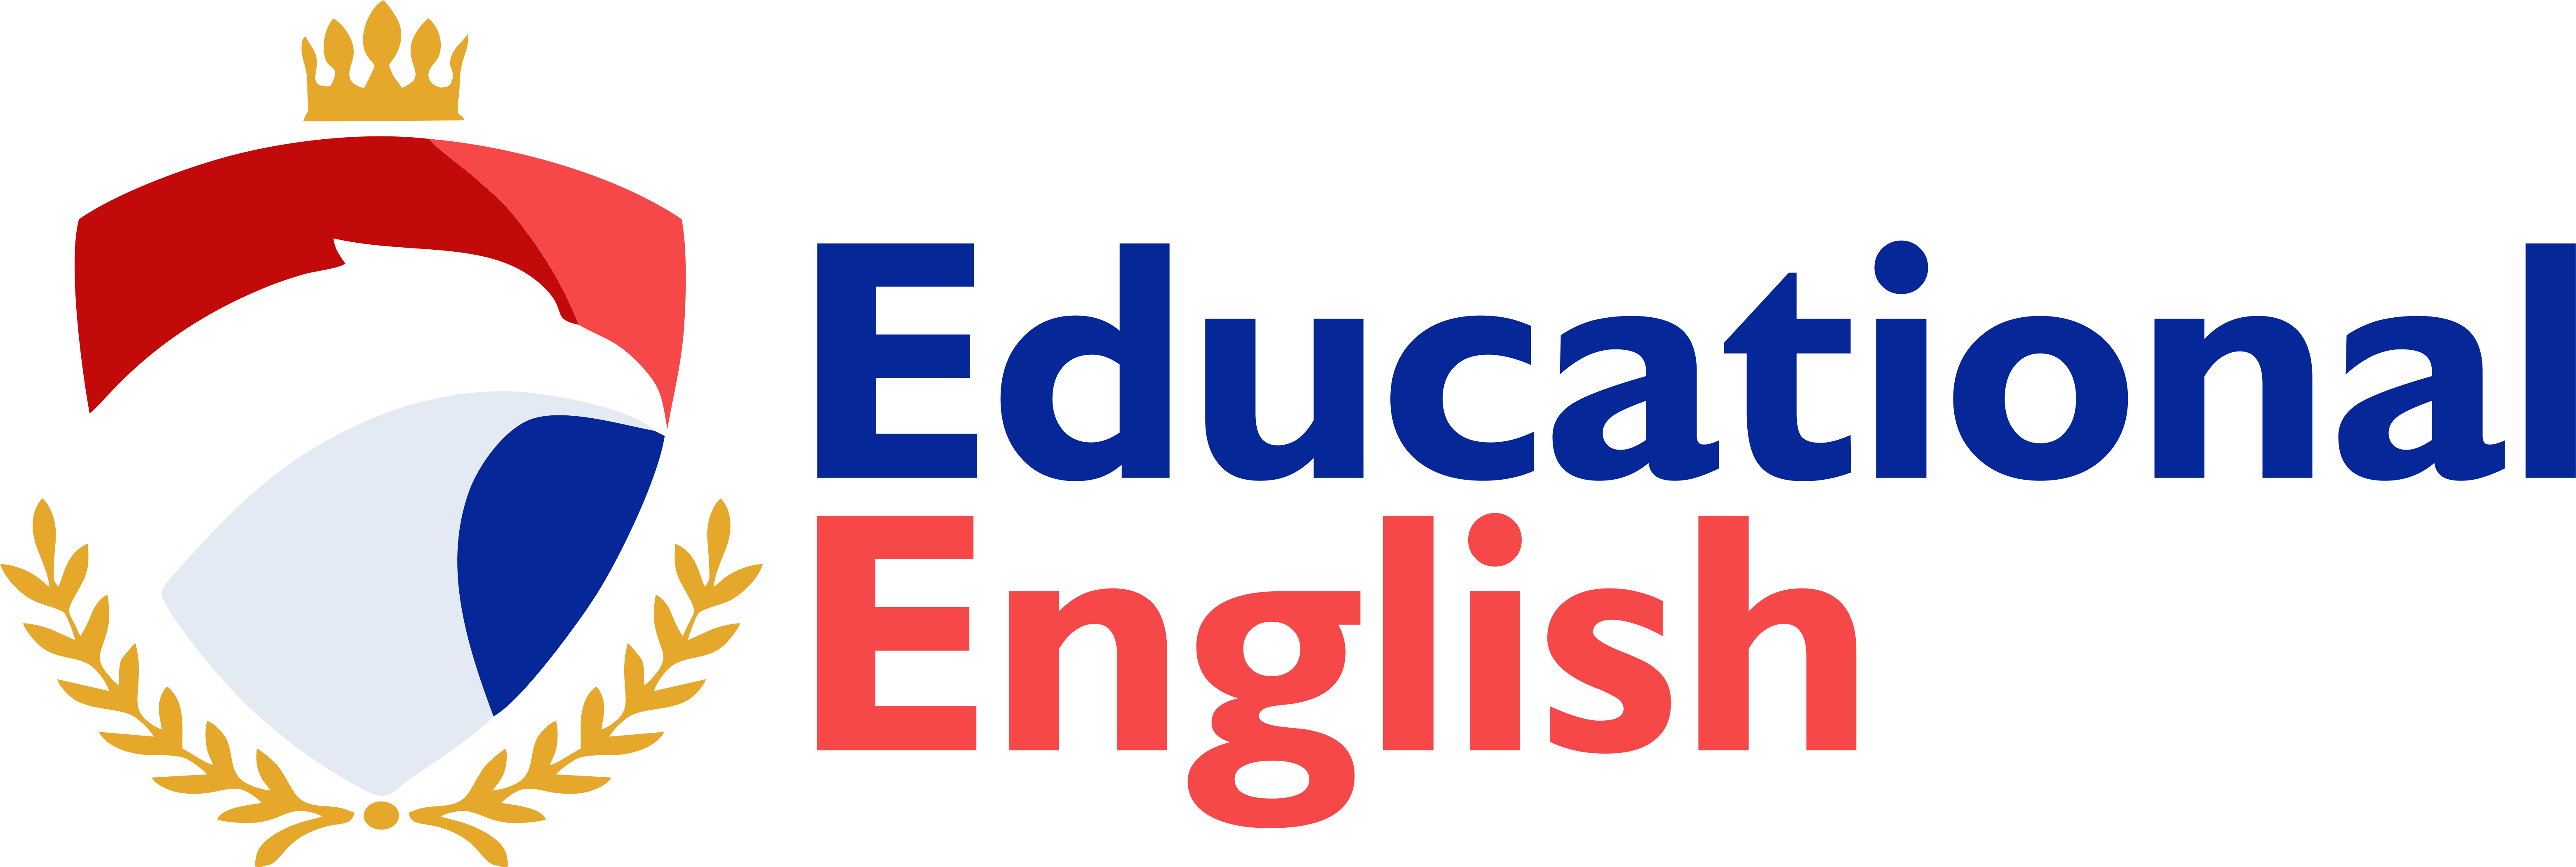 Educational English